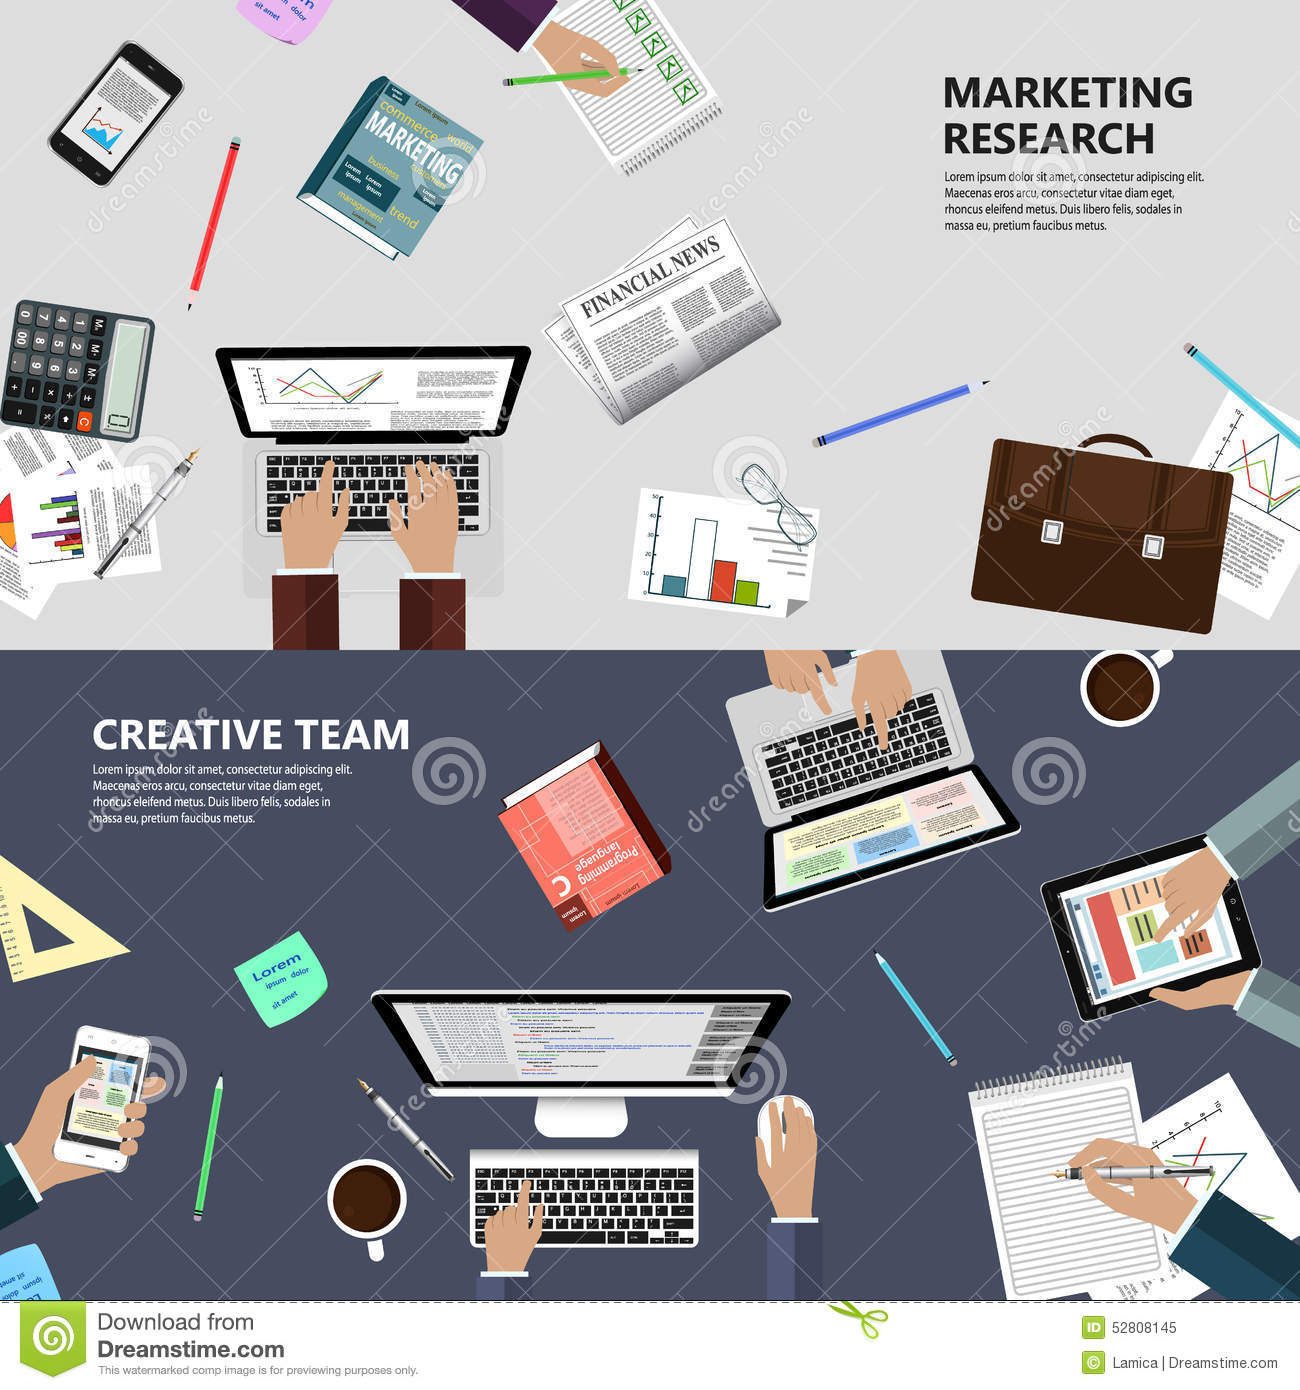 Marketing Research Concept And Applications Gamitiocom Marketing Research Creative Team Concept Modern Flat Design E Business Web Sites Mobile Applications Banners Corporate  Paper